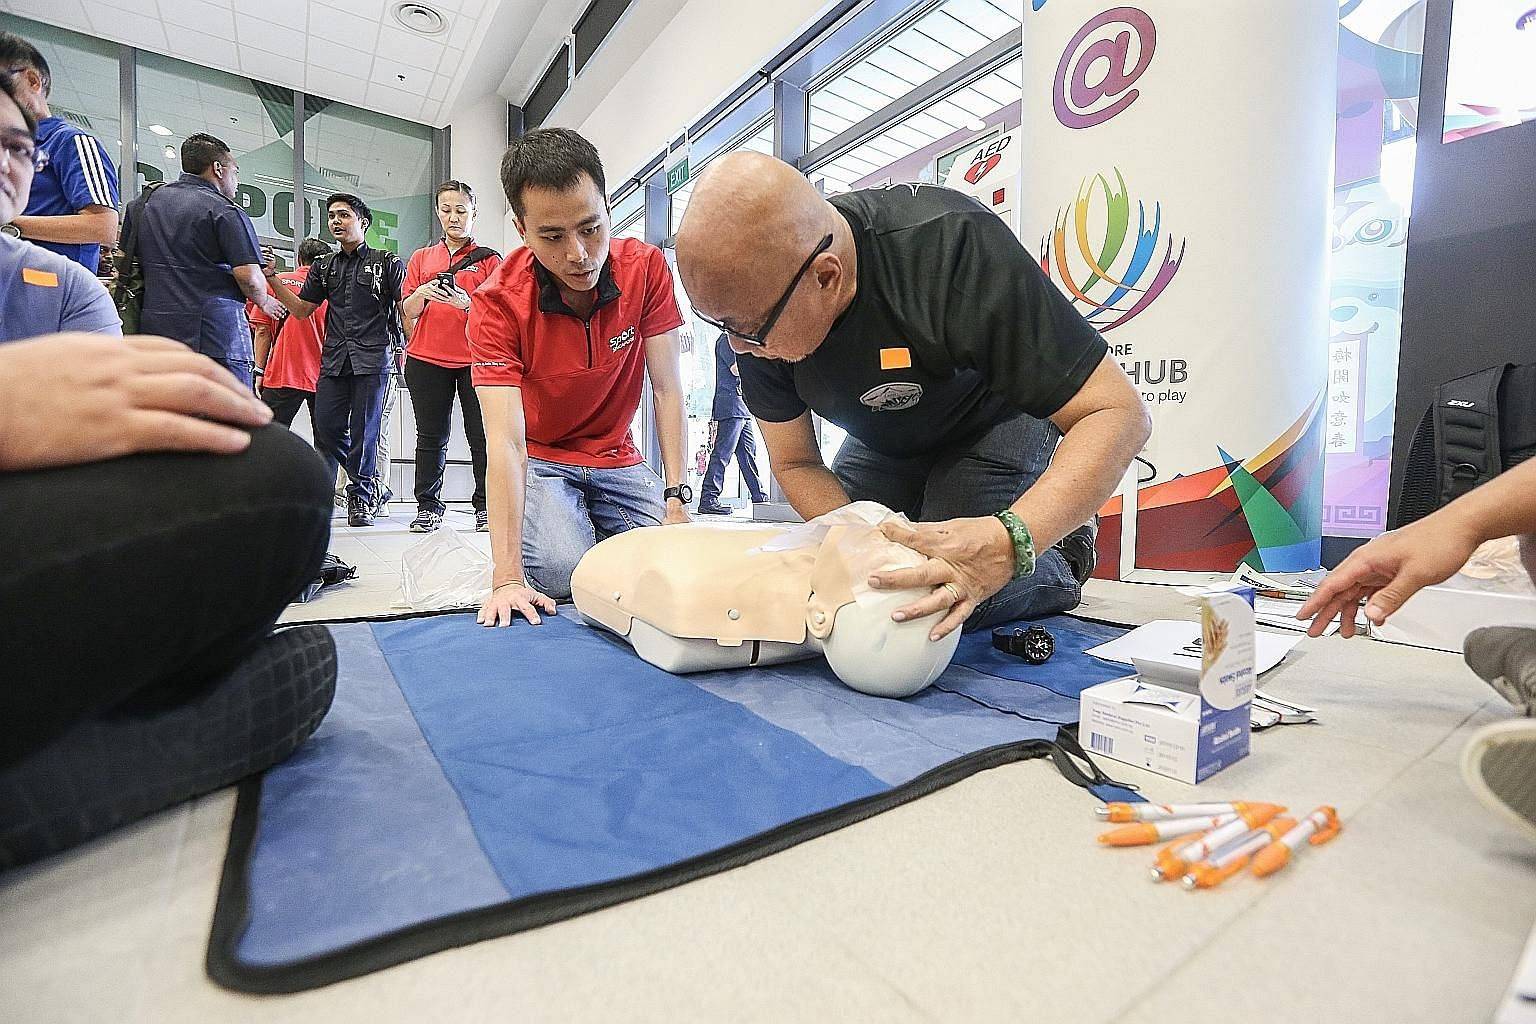 In a recent survey by Temasek Foundation Cares, more than half of the 2,001 respondents recognised that knowledge in CPR, first aid skills and using an automated external defibrillator will come in handy in emergencies, but fewer than two in 10 had a